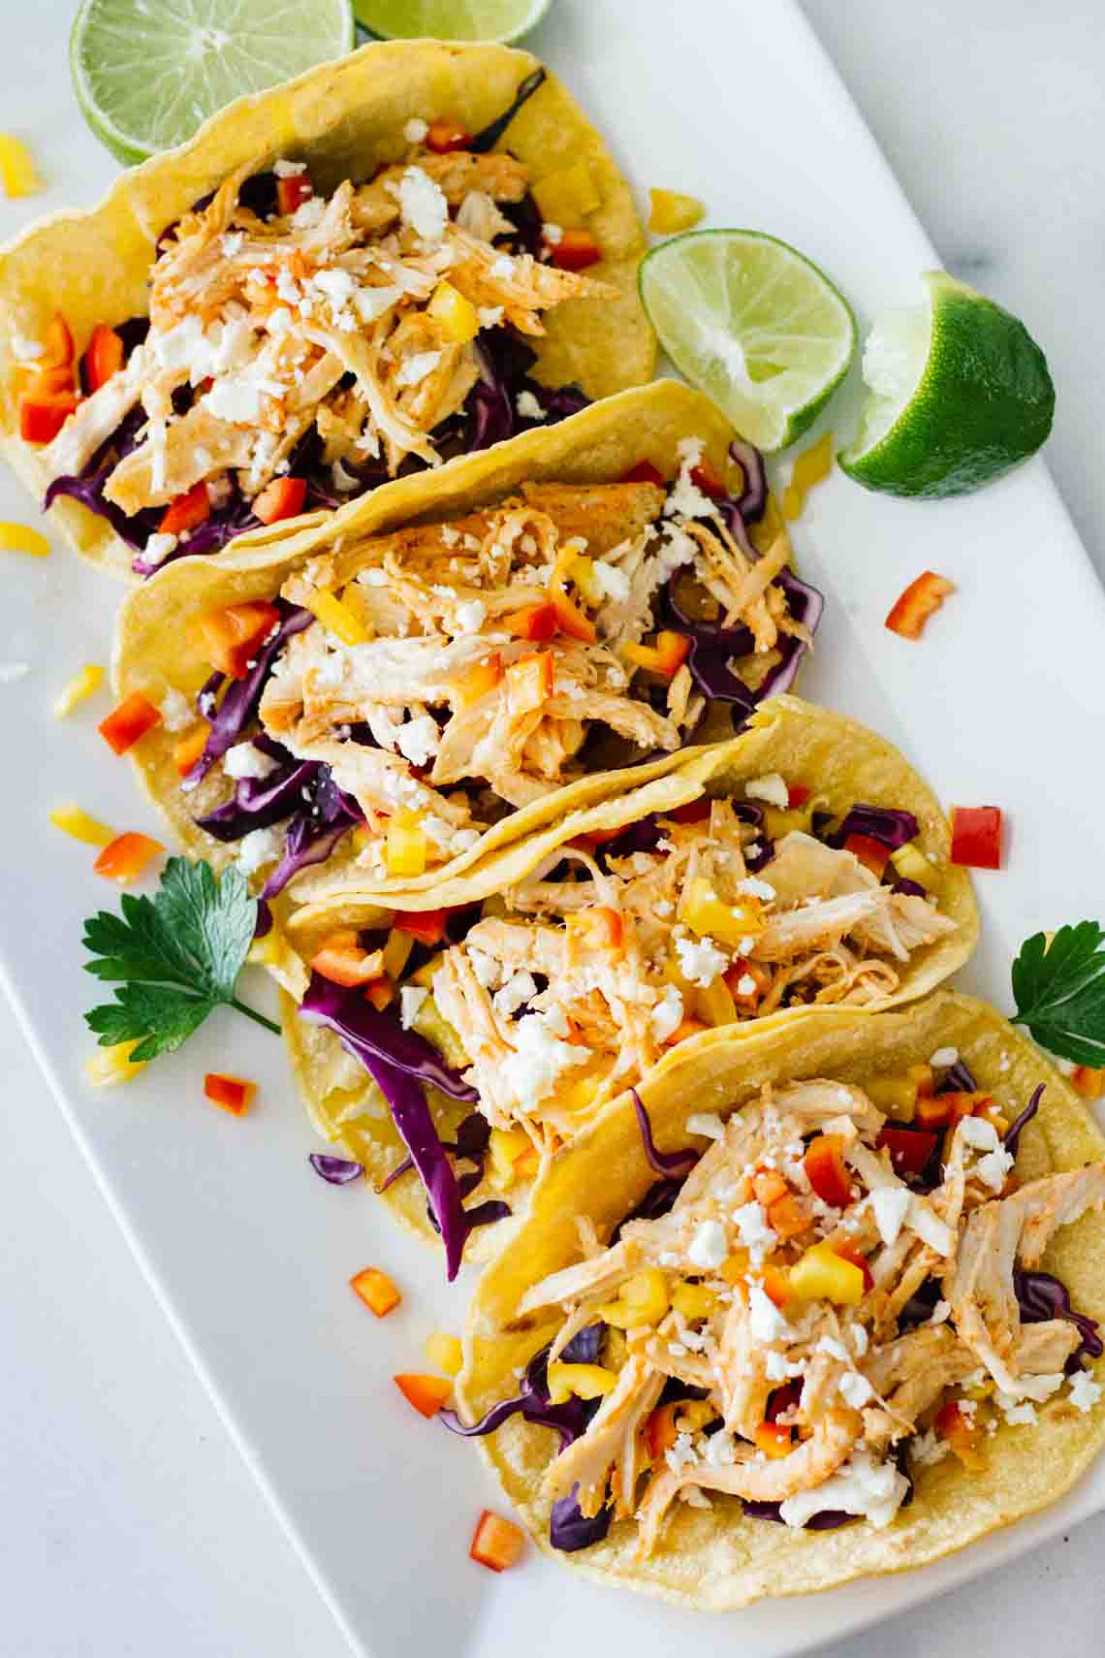 Healthy Sriracha Shredded Chicken Tacos - Jar Of Lemons - chicken recipes quick and easy for dinner